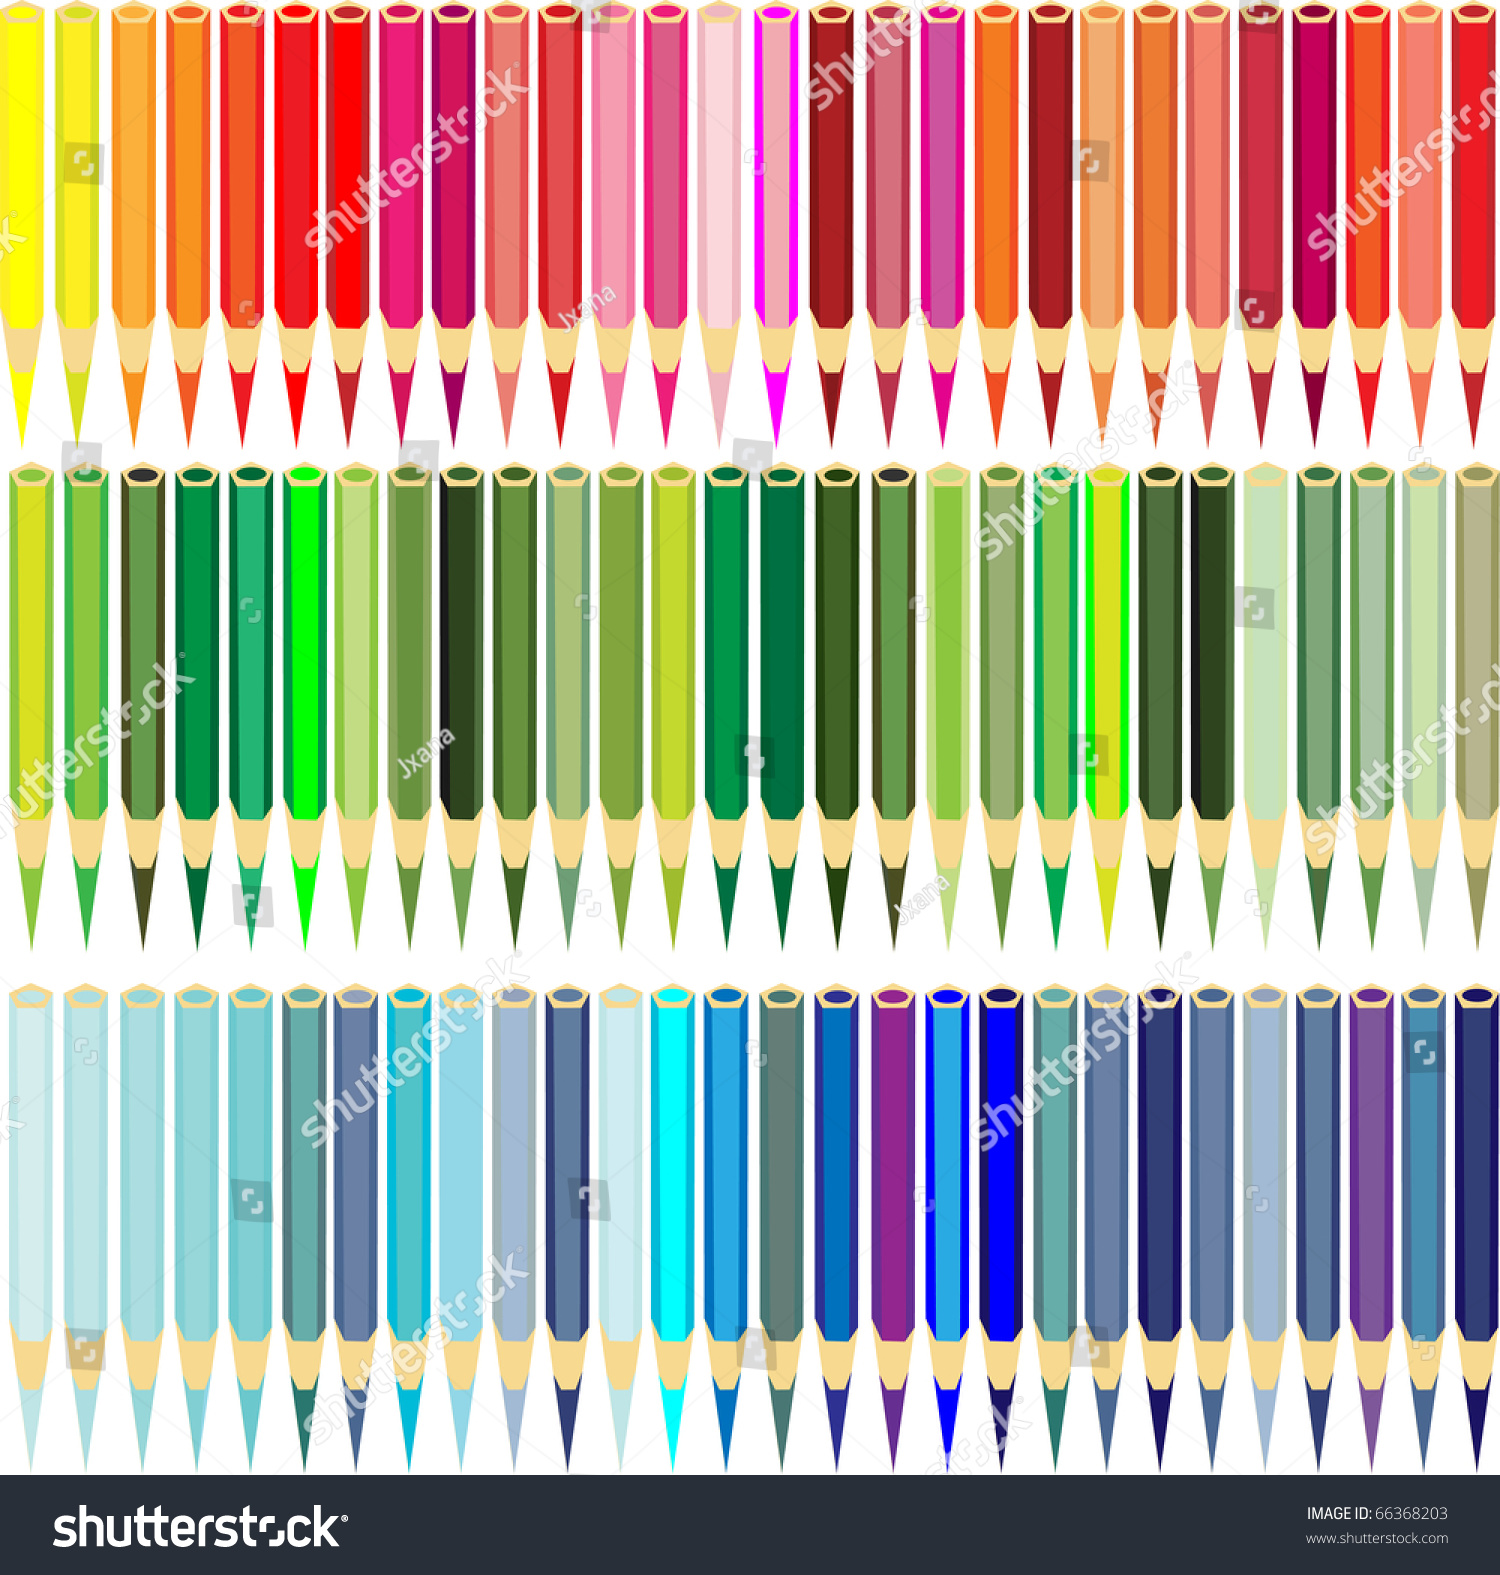 Collection Of Color Pencils All Shades Red, Dark Blue And